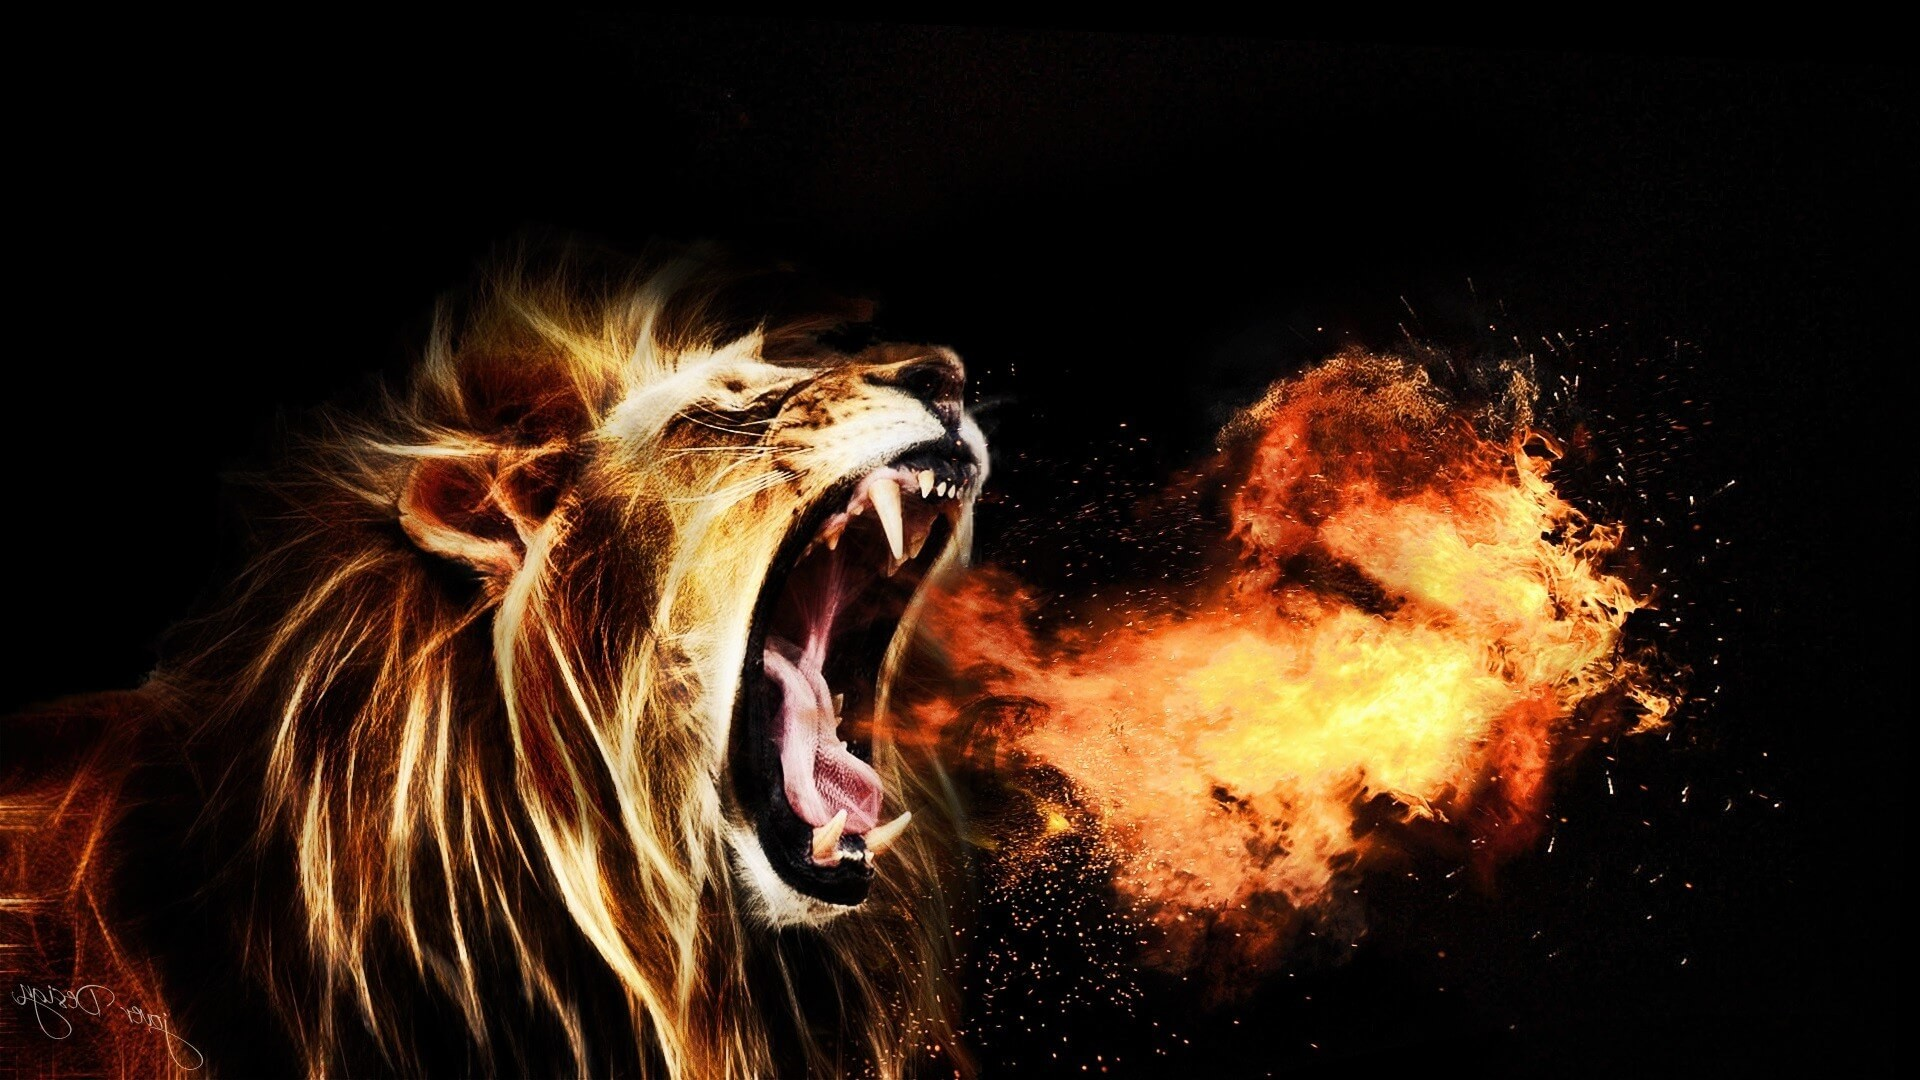 roaring lion wallpaper (67+ images)